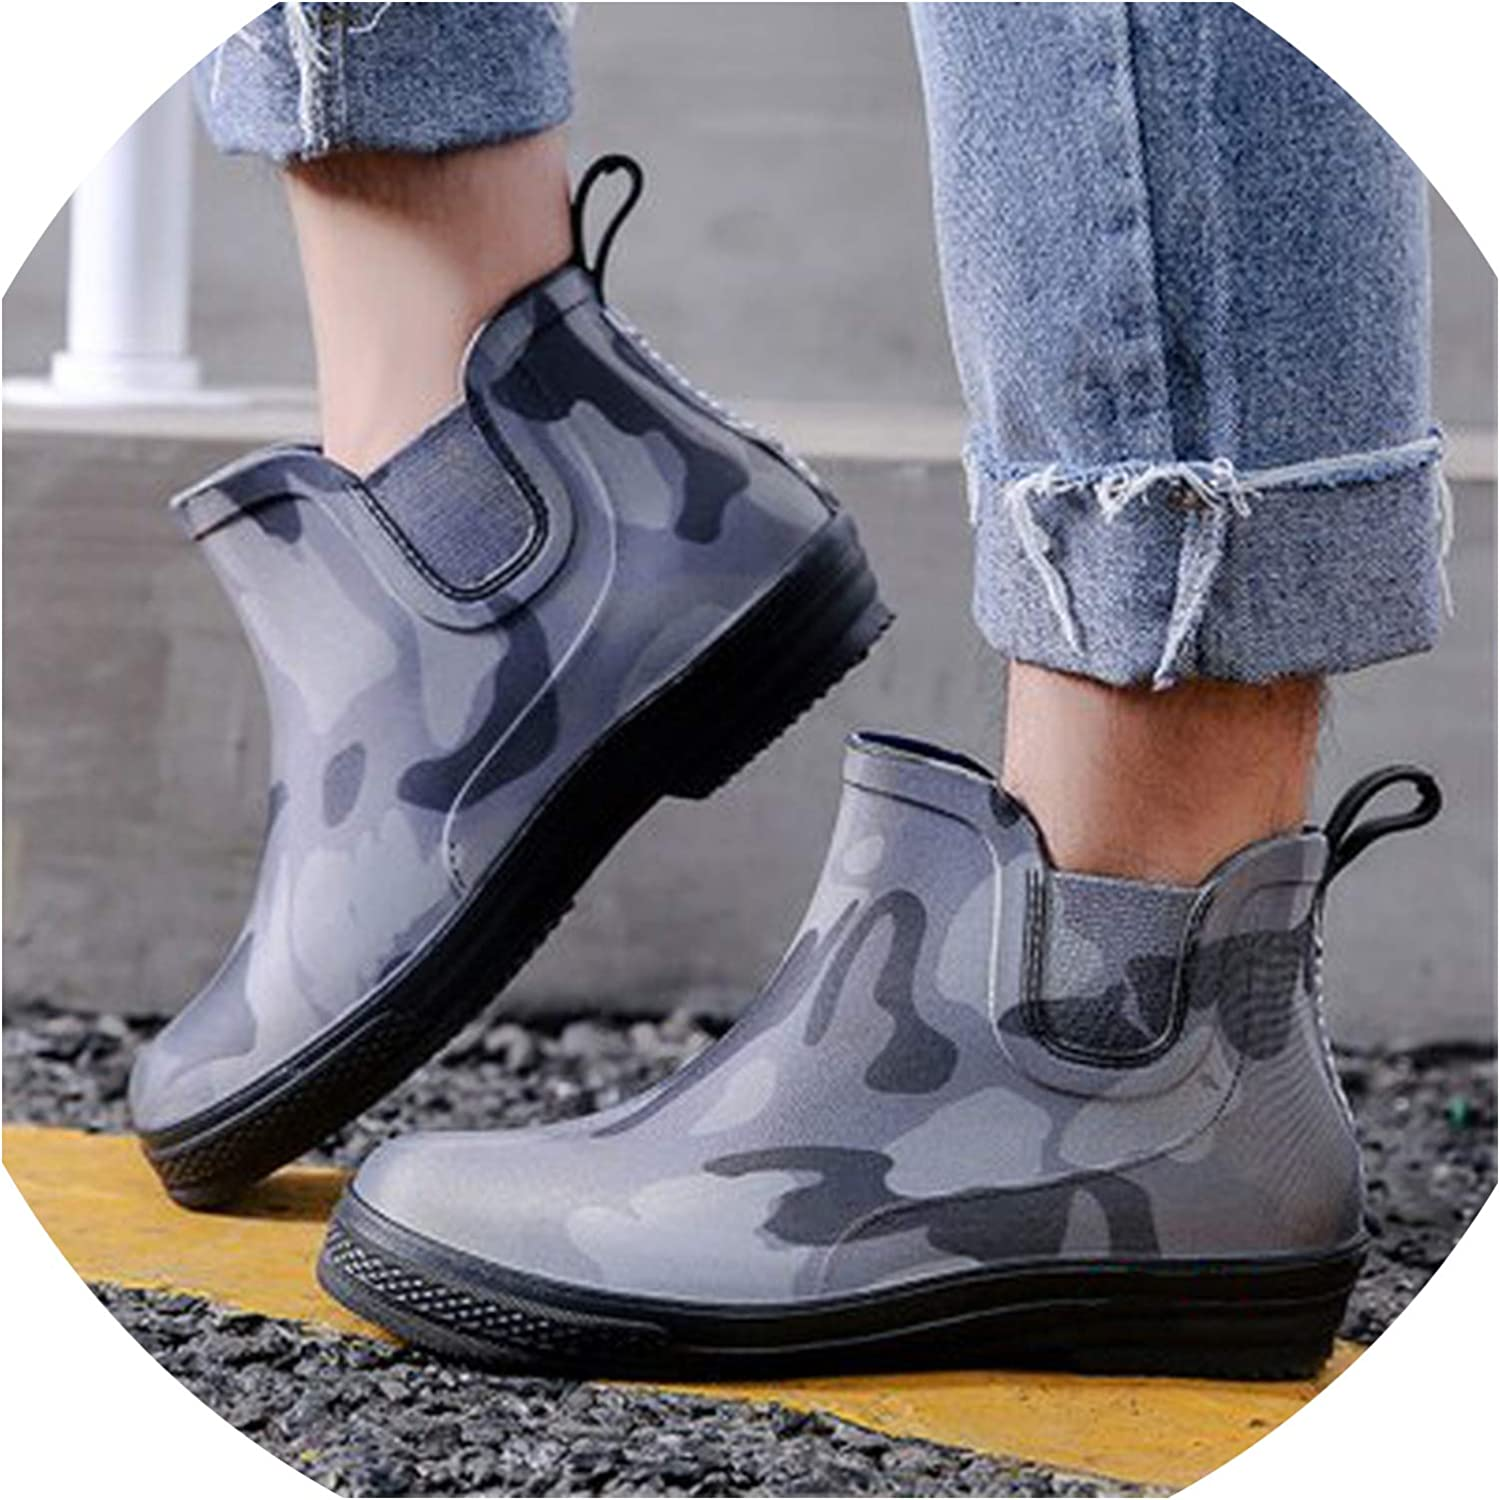 FAT BABY Rainboots shoes Woman 2019 Ankle Rain Boots Female Waterproof Water shoes Quality Ladies Wellies Rainboots